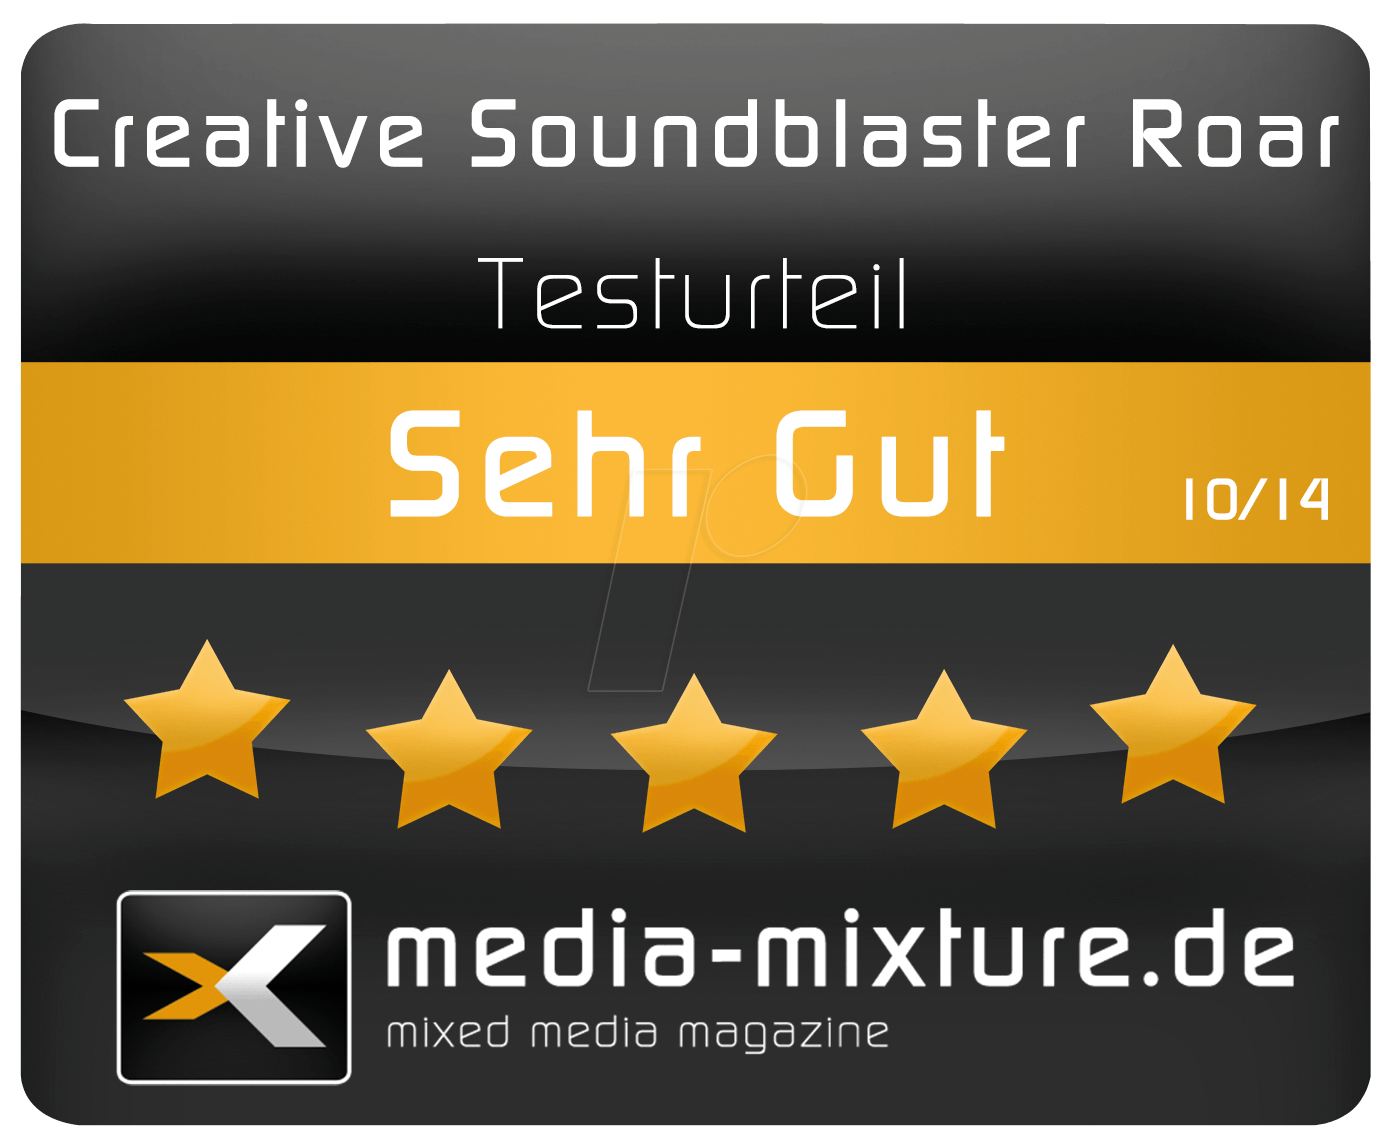 https://cdn-reichelt.de/bilder/web/xxl_ws/EB00/CREATIVE_SOUNDBLASTER_ROAR_MM.png